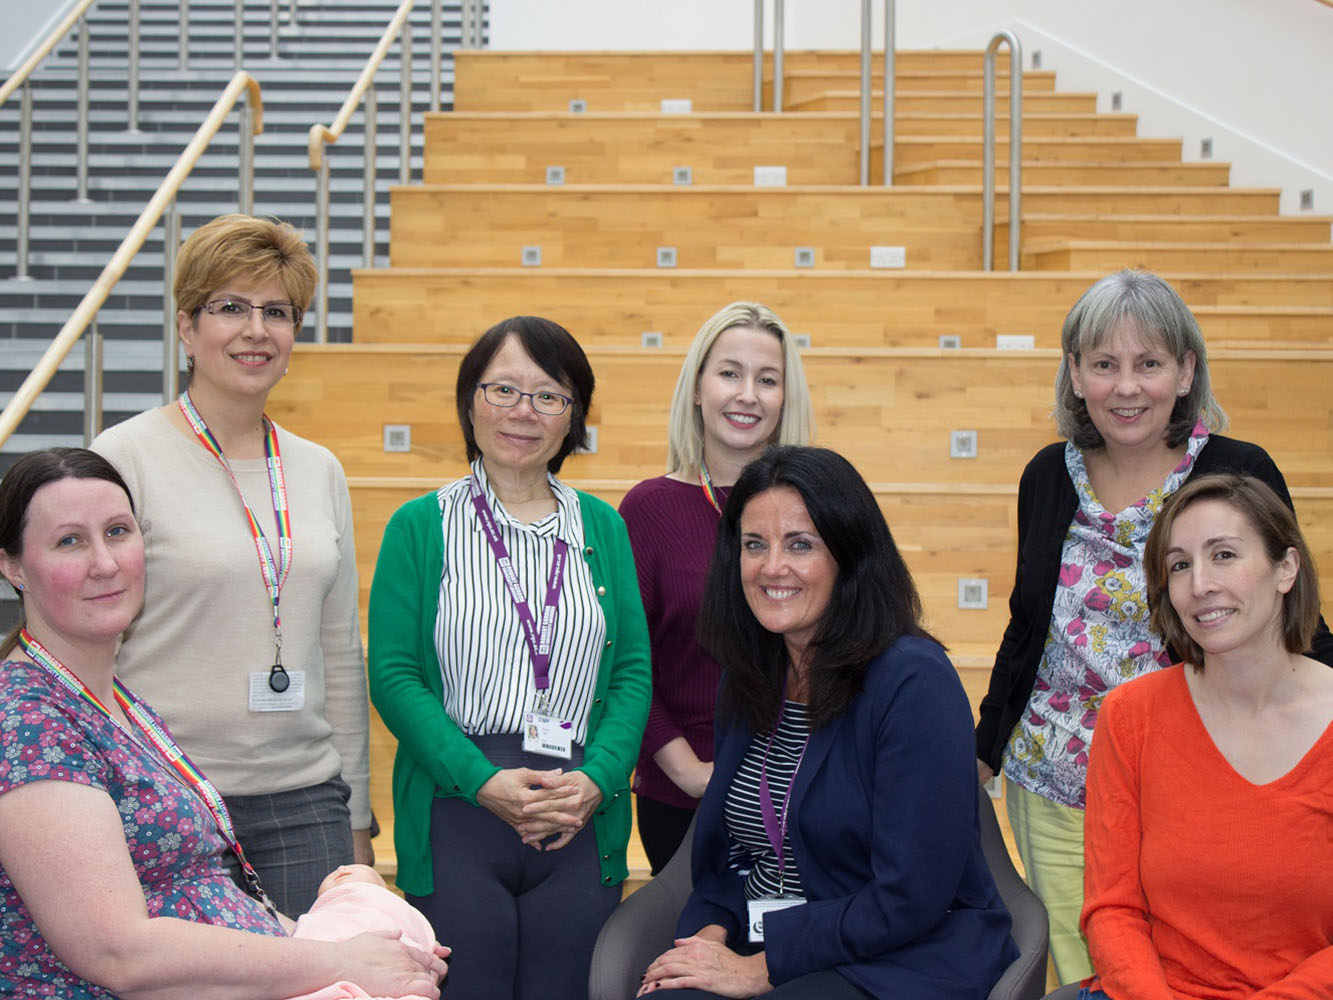 RGU nominated for national awards for opening its doors to prospective midwives